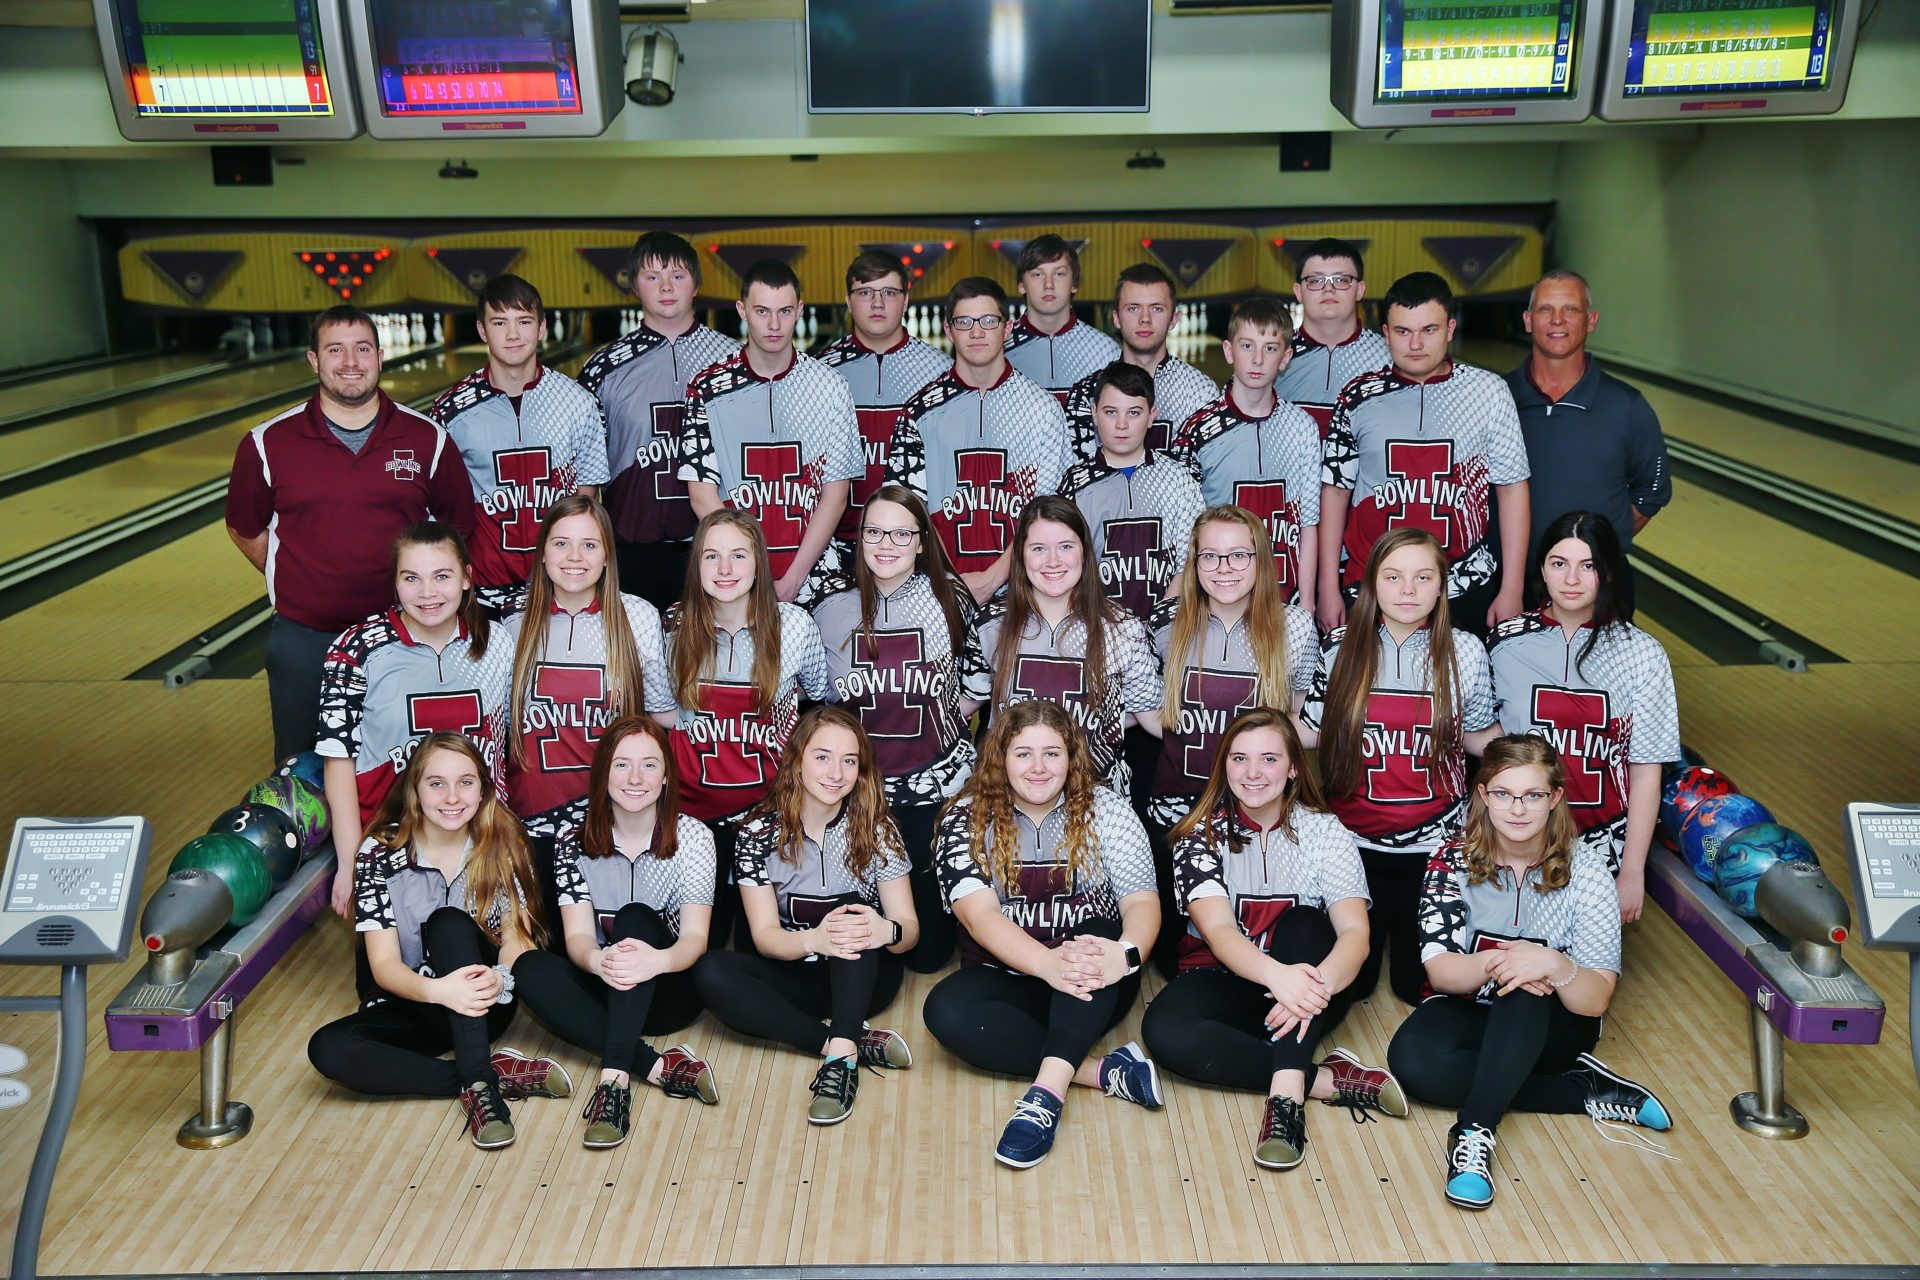 Independence bowling team